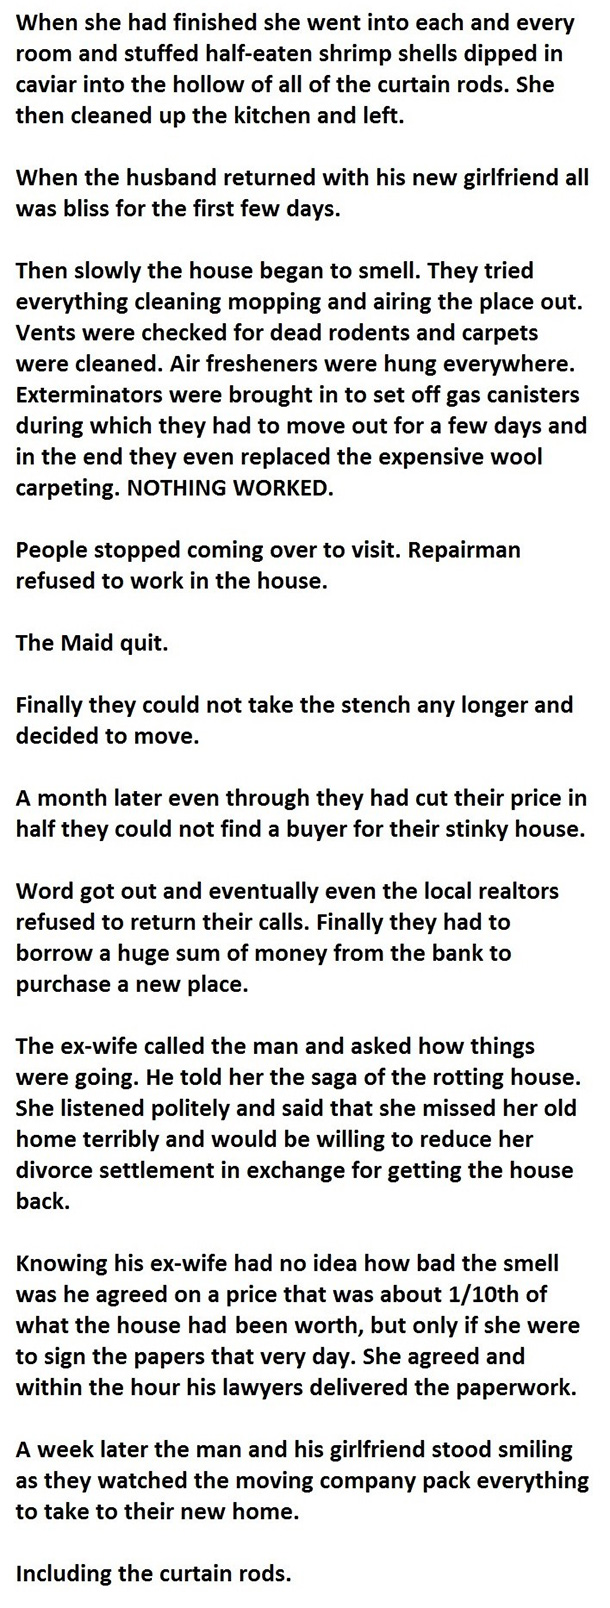 Wife Gets Epic Revenge Ever After Cheating Husband Gives Her